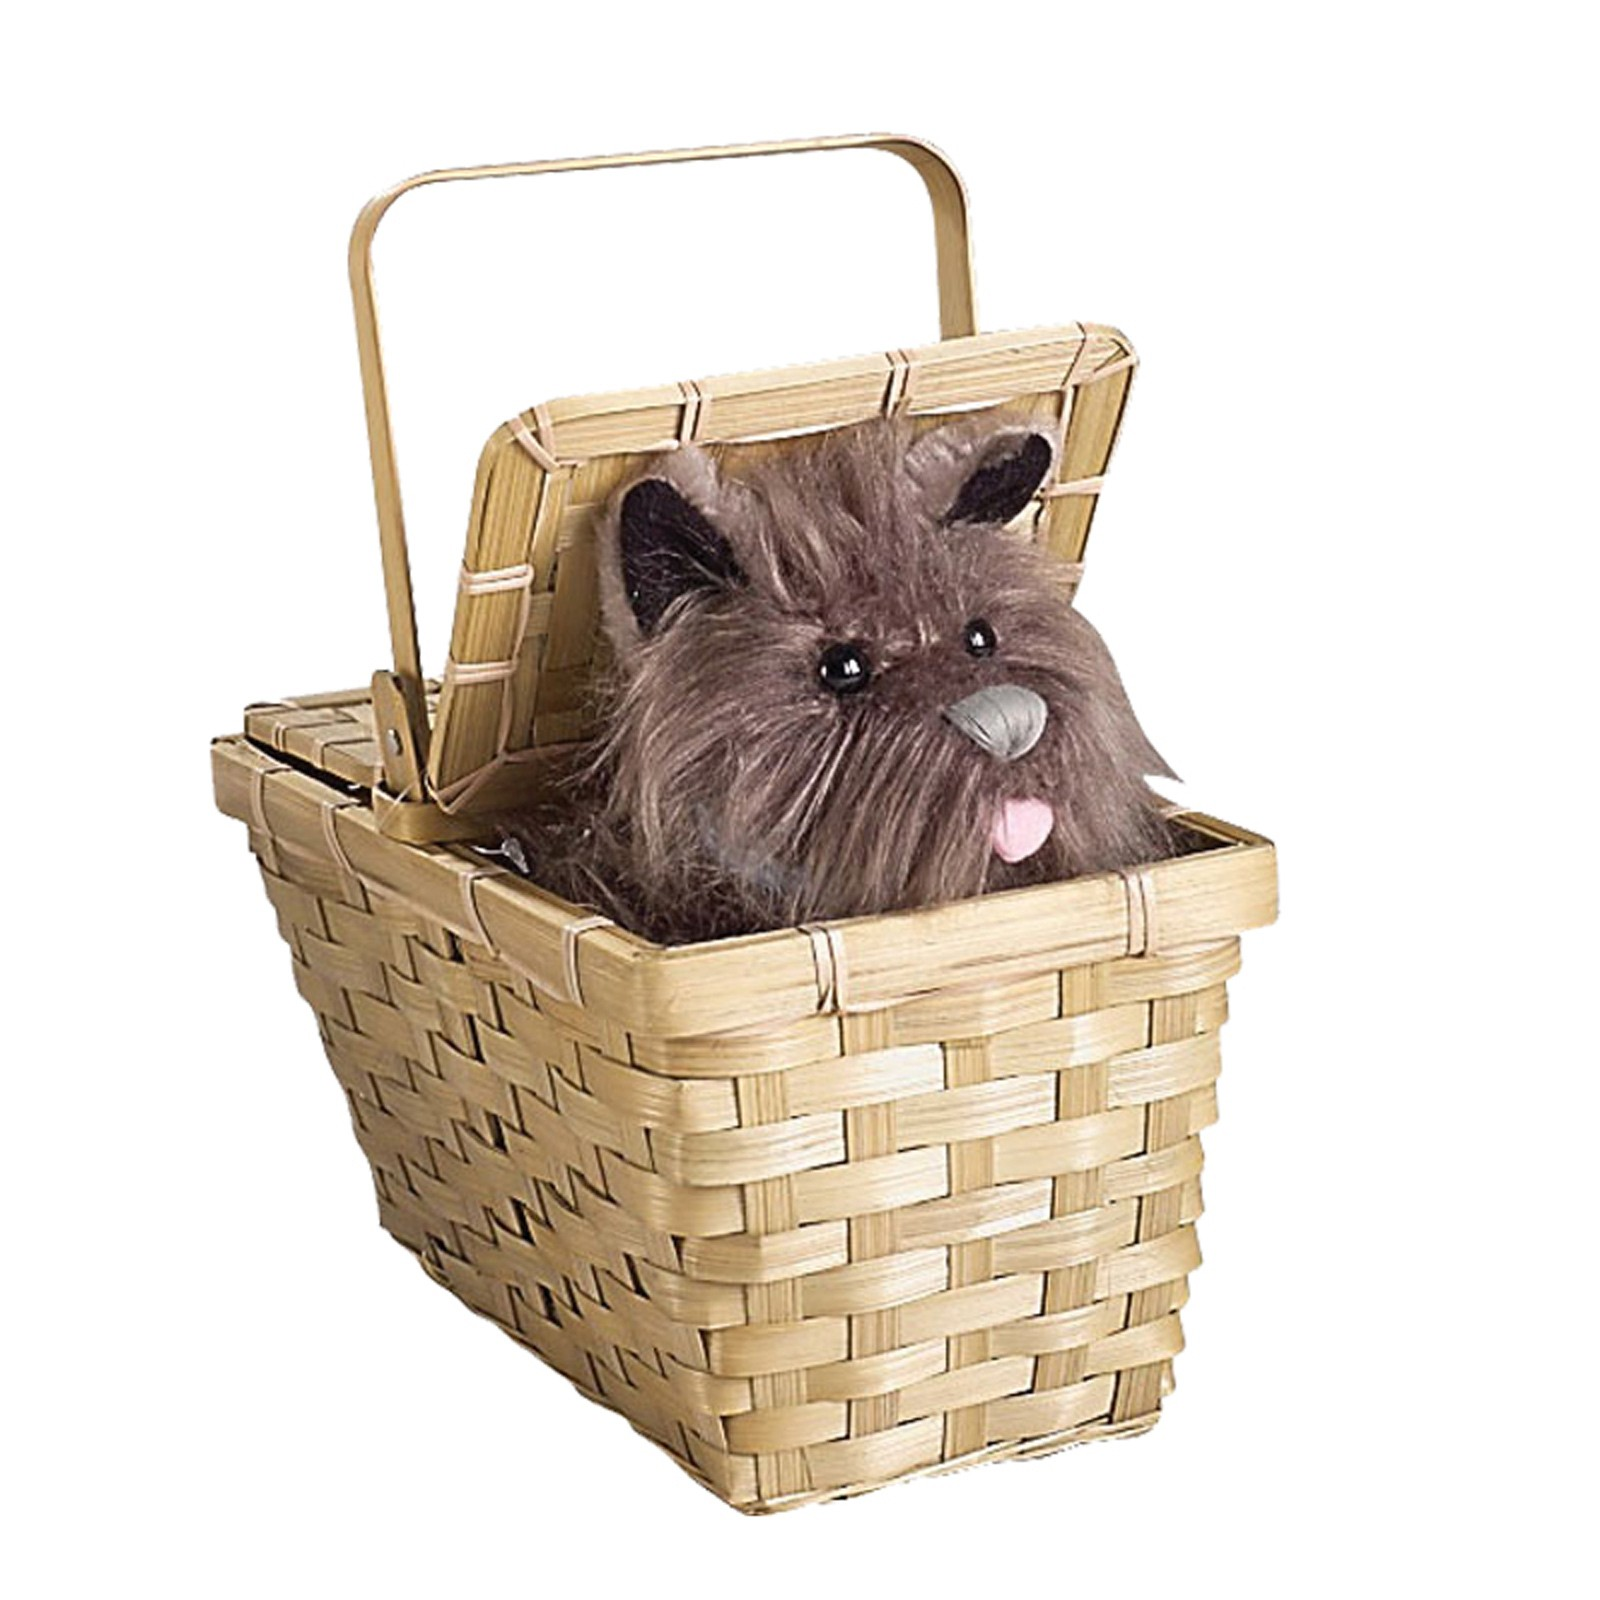 Toto in Basket Deluxe Wizard of Oz Dog Womenu0027s Dorothy Costume Accessory.jpg  sc 1 st  Costumes.com.au & Toto in Basket Deluxe Wizard of Oz Dog Womenu0027s Dorothy Costume ...